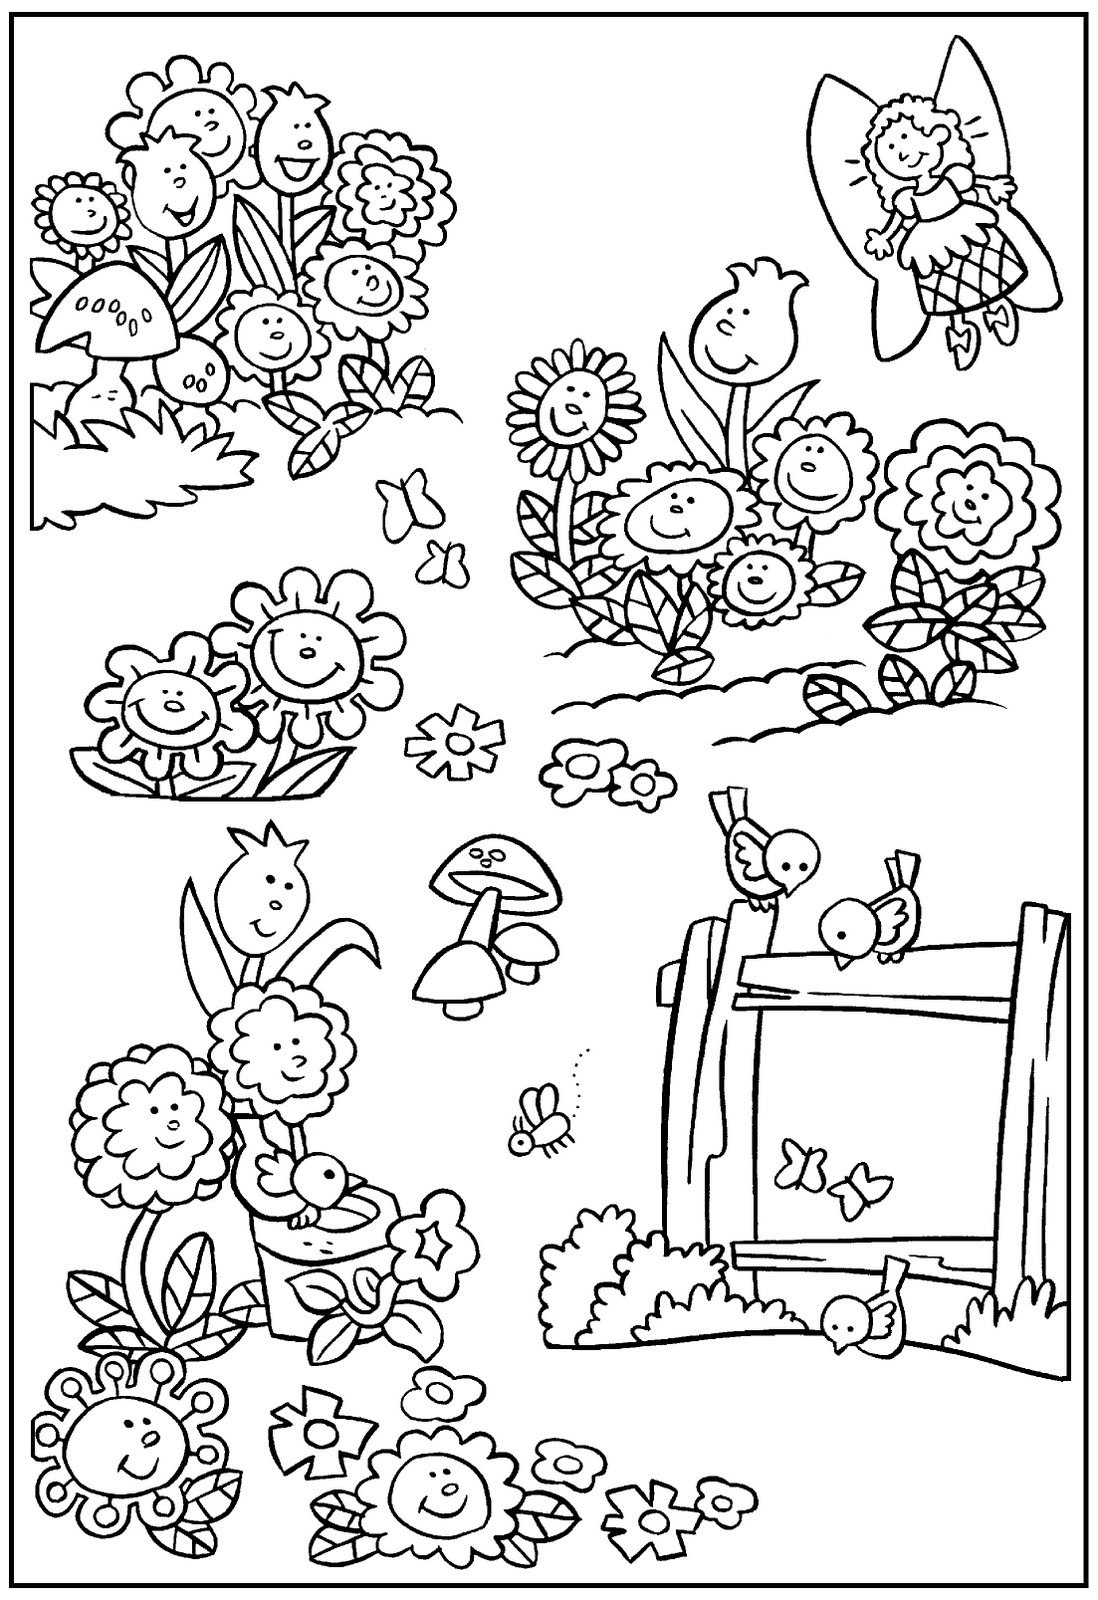 my little house: anna et the flower jardin dessins à colorier